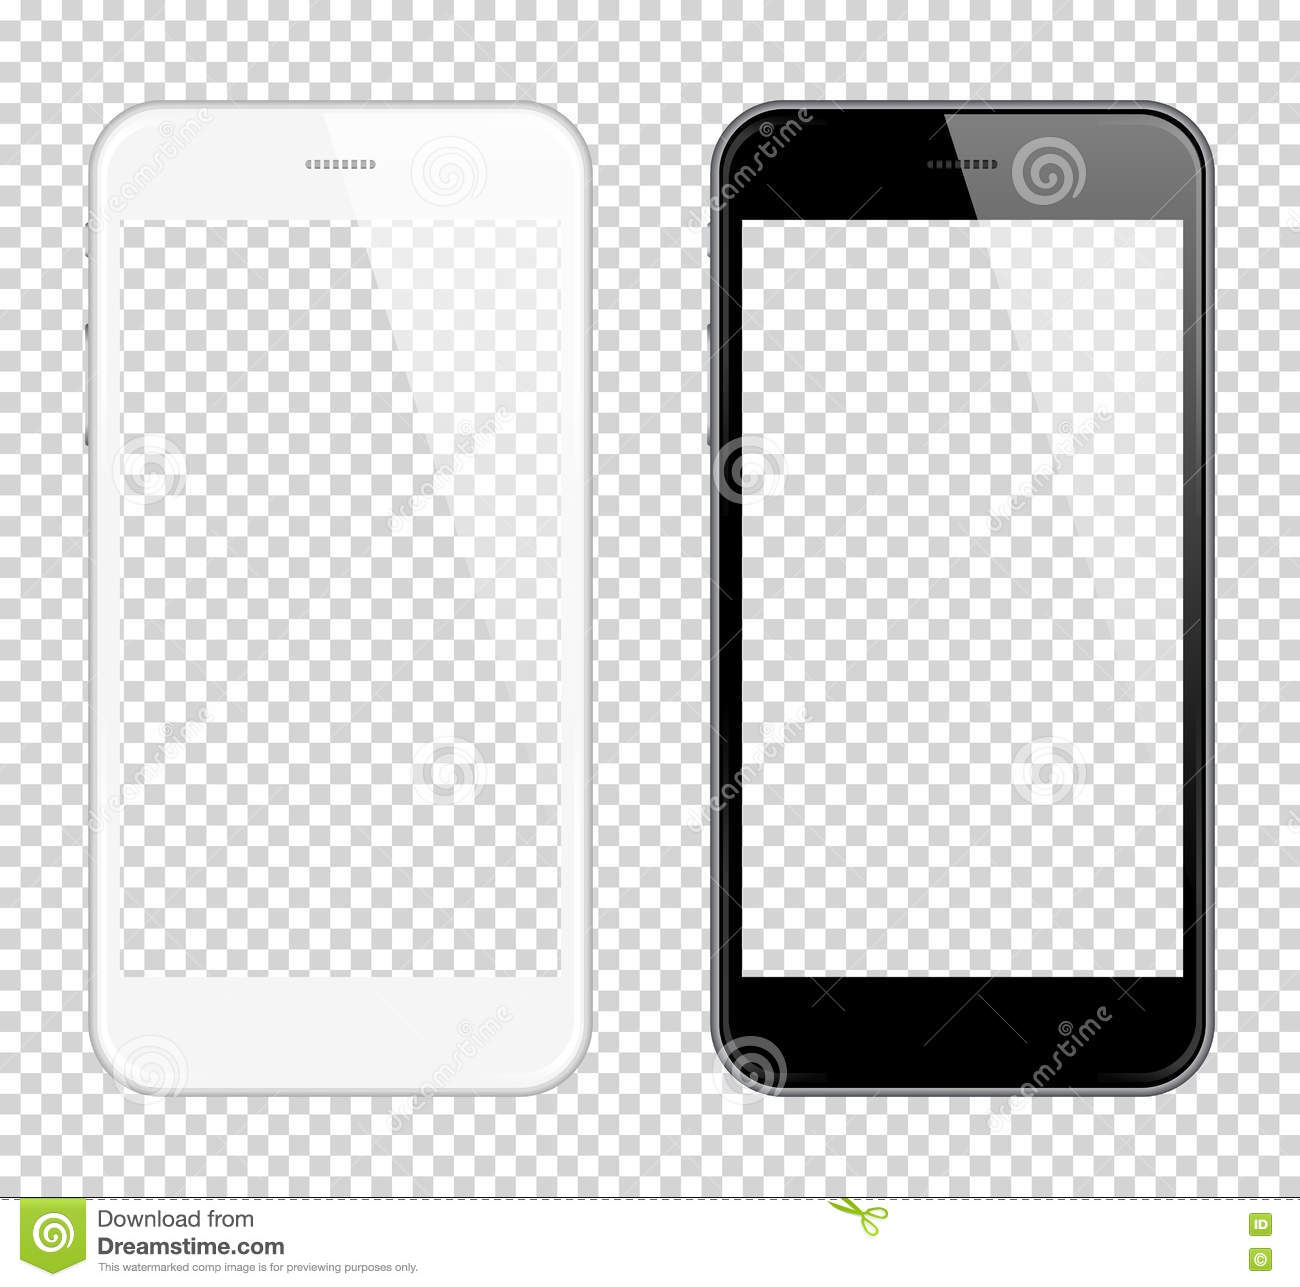 Realistic smart phone Vector Mock Up. Fully Re-size-able. Easy way to place image into screen Smartphone, for web design